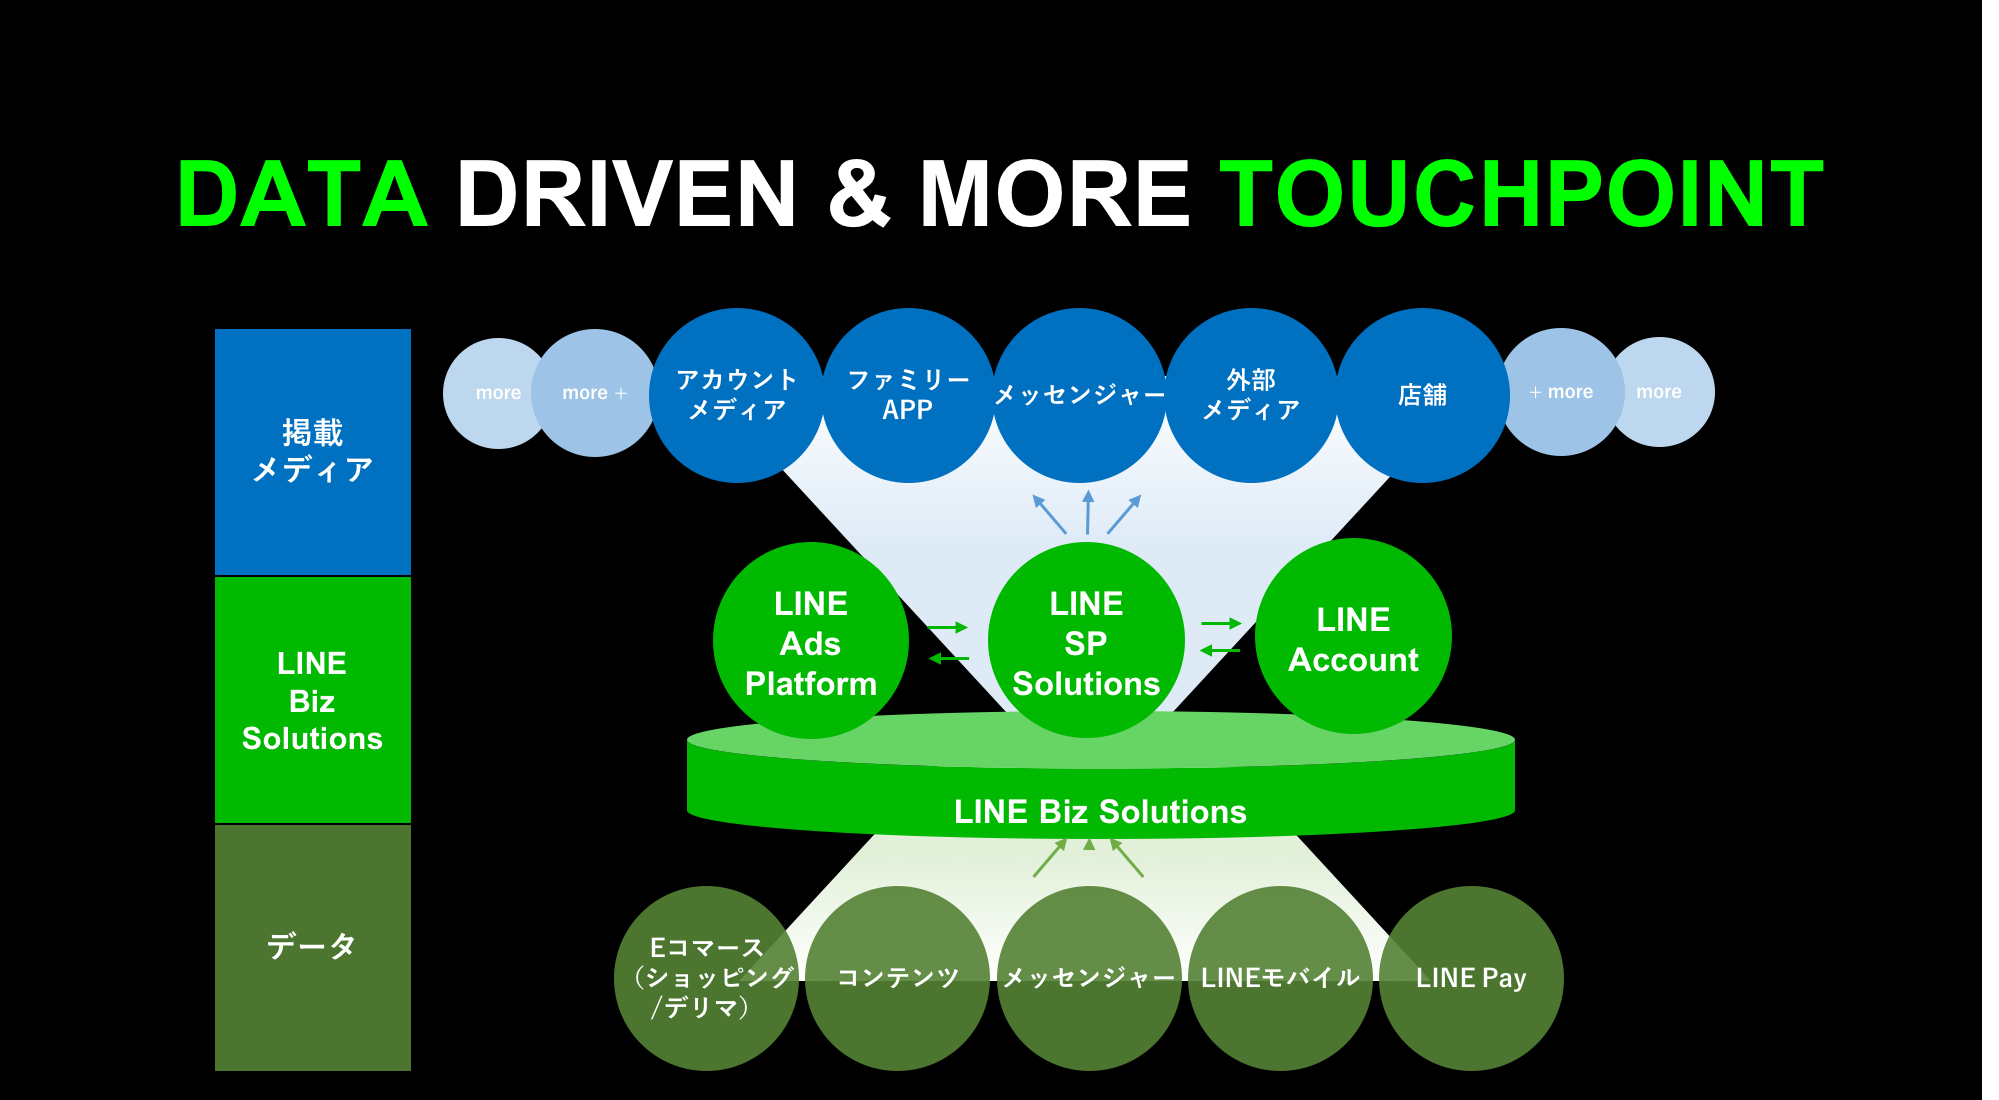 DATA DRIVEN & MORE TOUCHPOINT